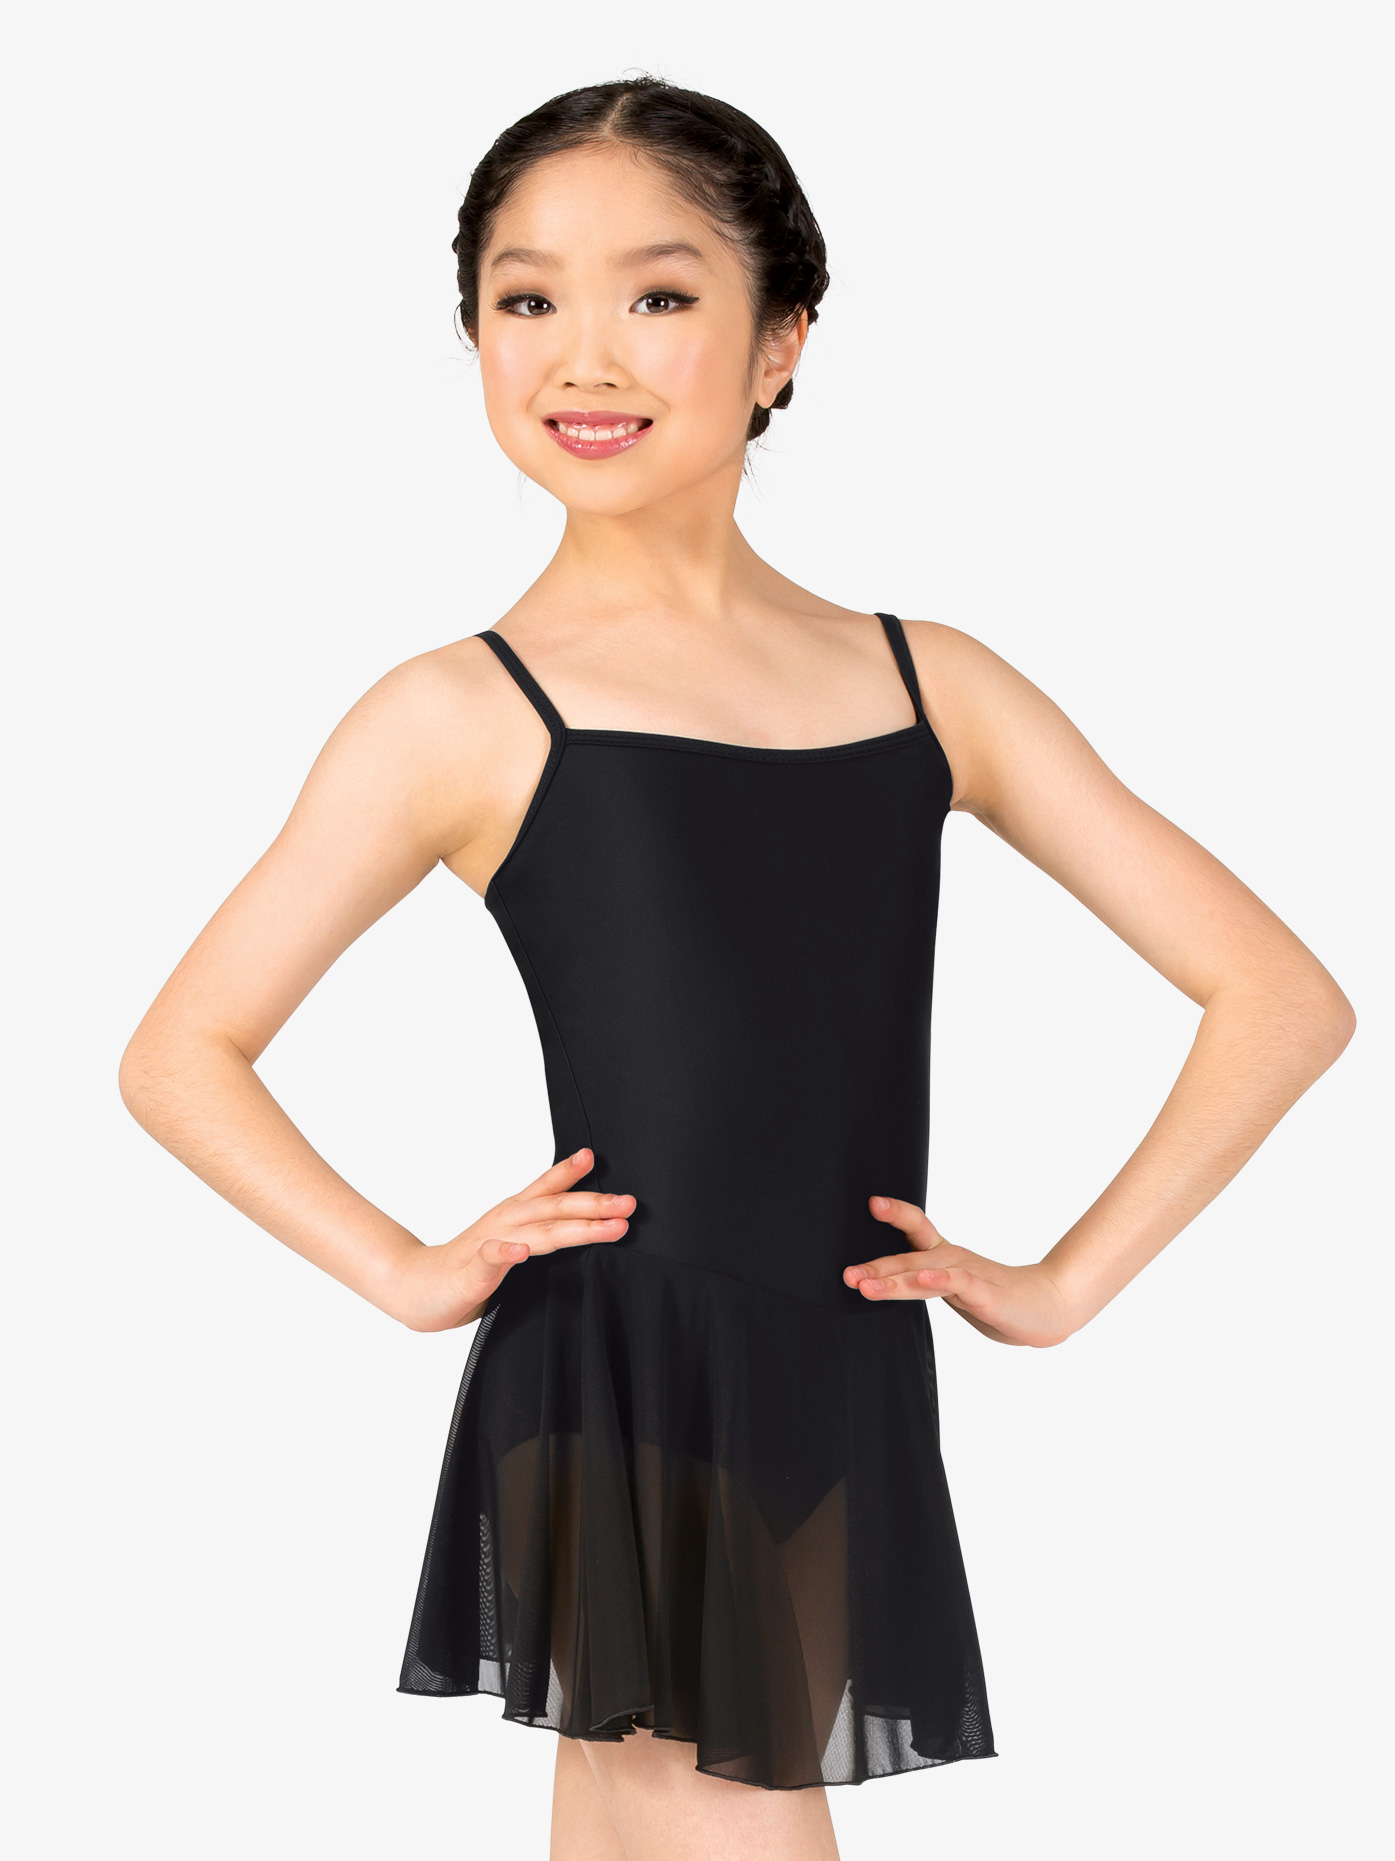 Natalie Girls Short Camisole Ballet Dress P204C